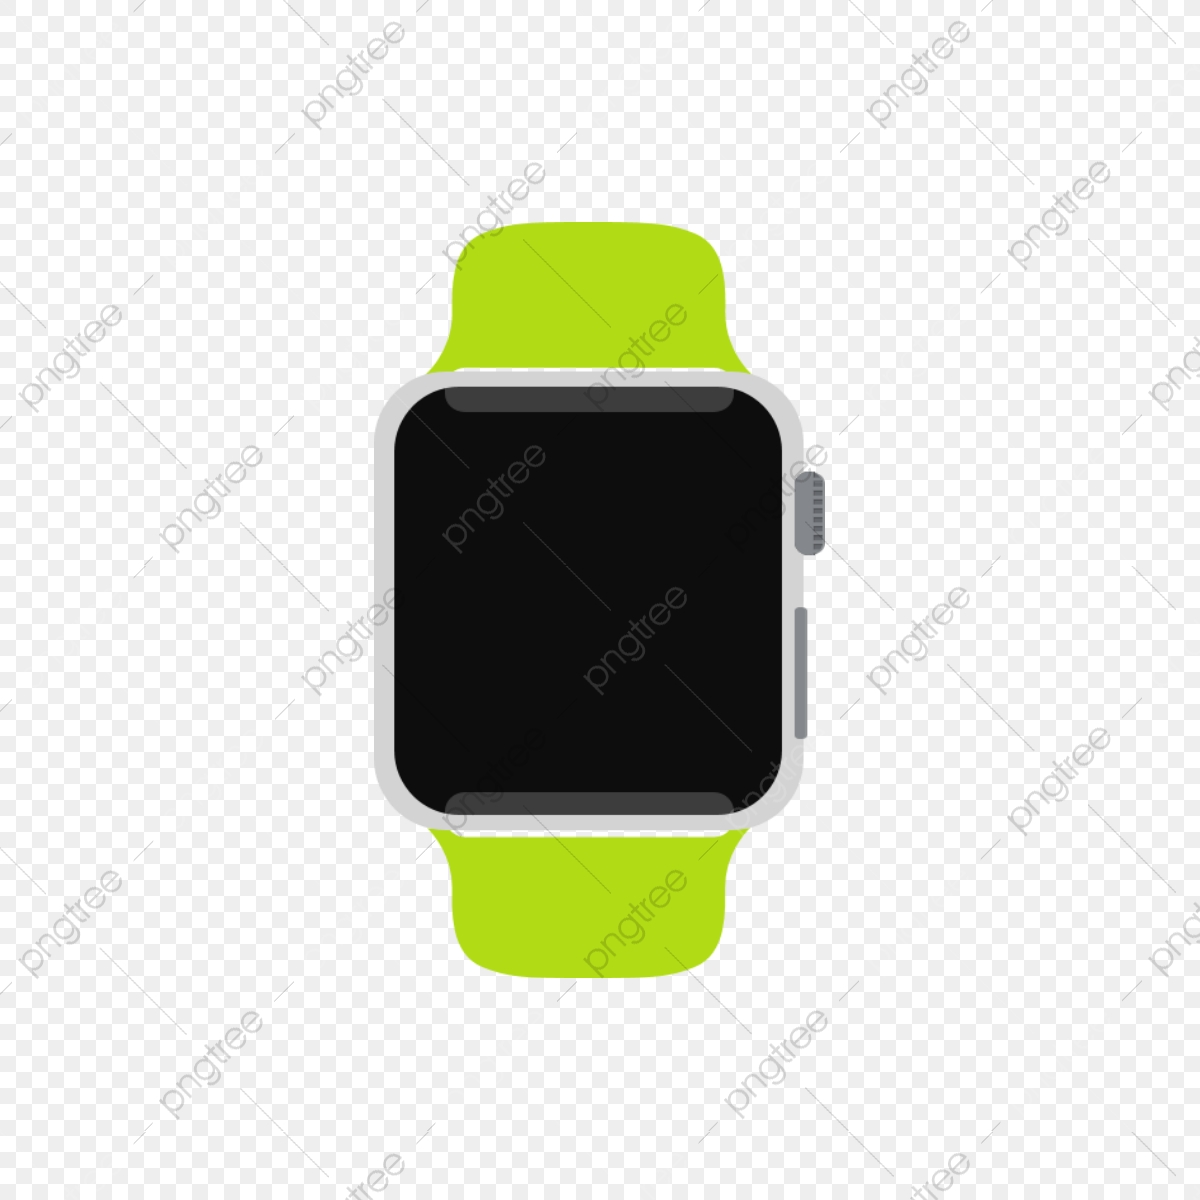 Smartwatch Vector, Smart, Watch, Product Kind PNG and Vector.